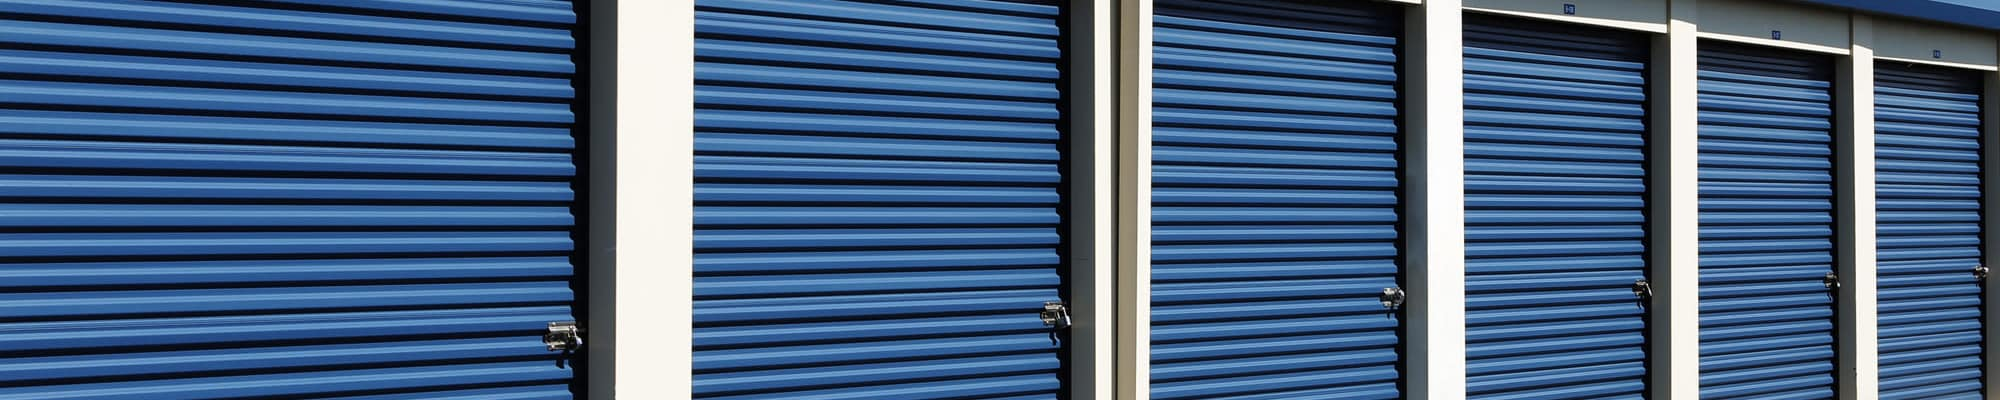 Business storage at Midgard Self Storage in Athens, Alabama